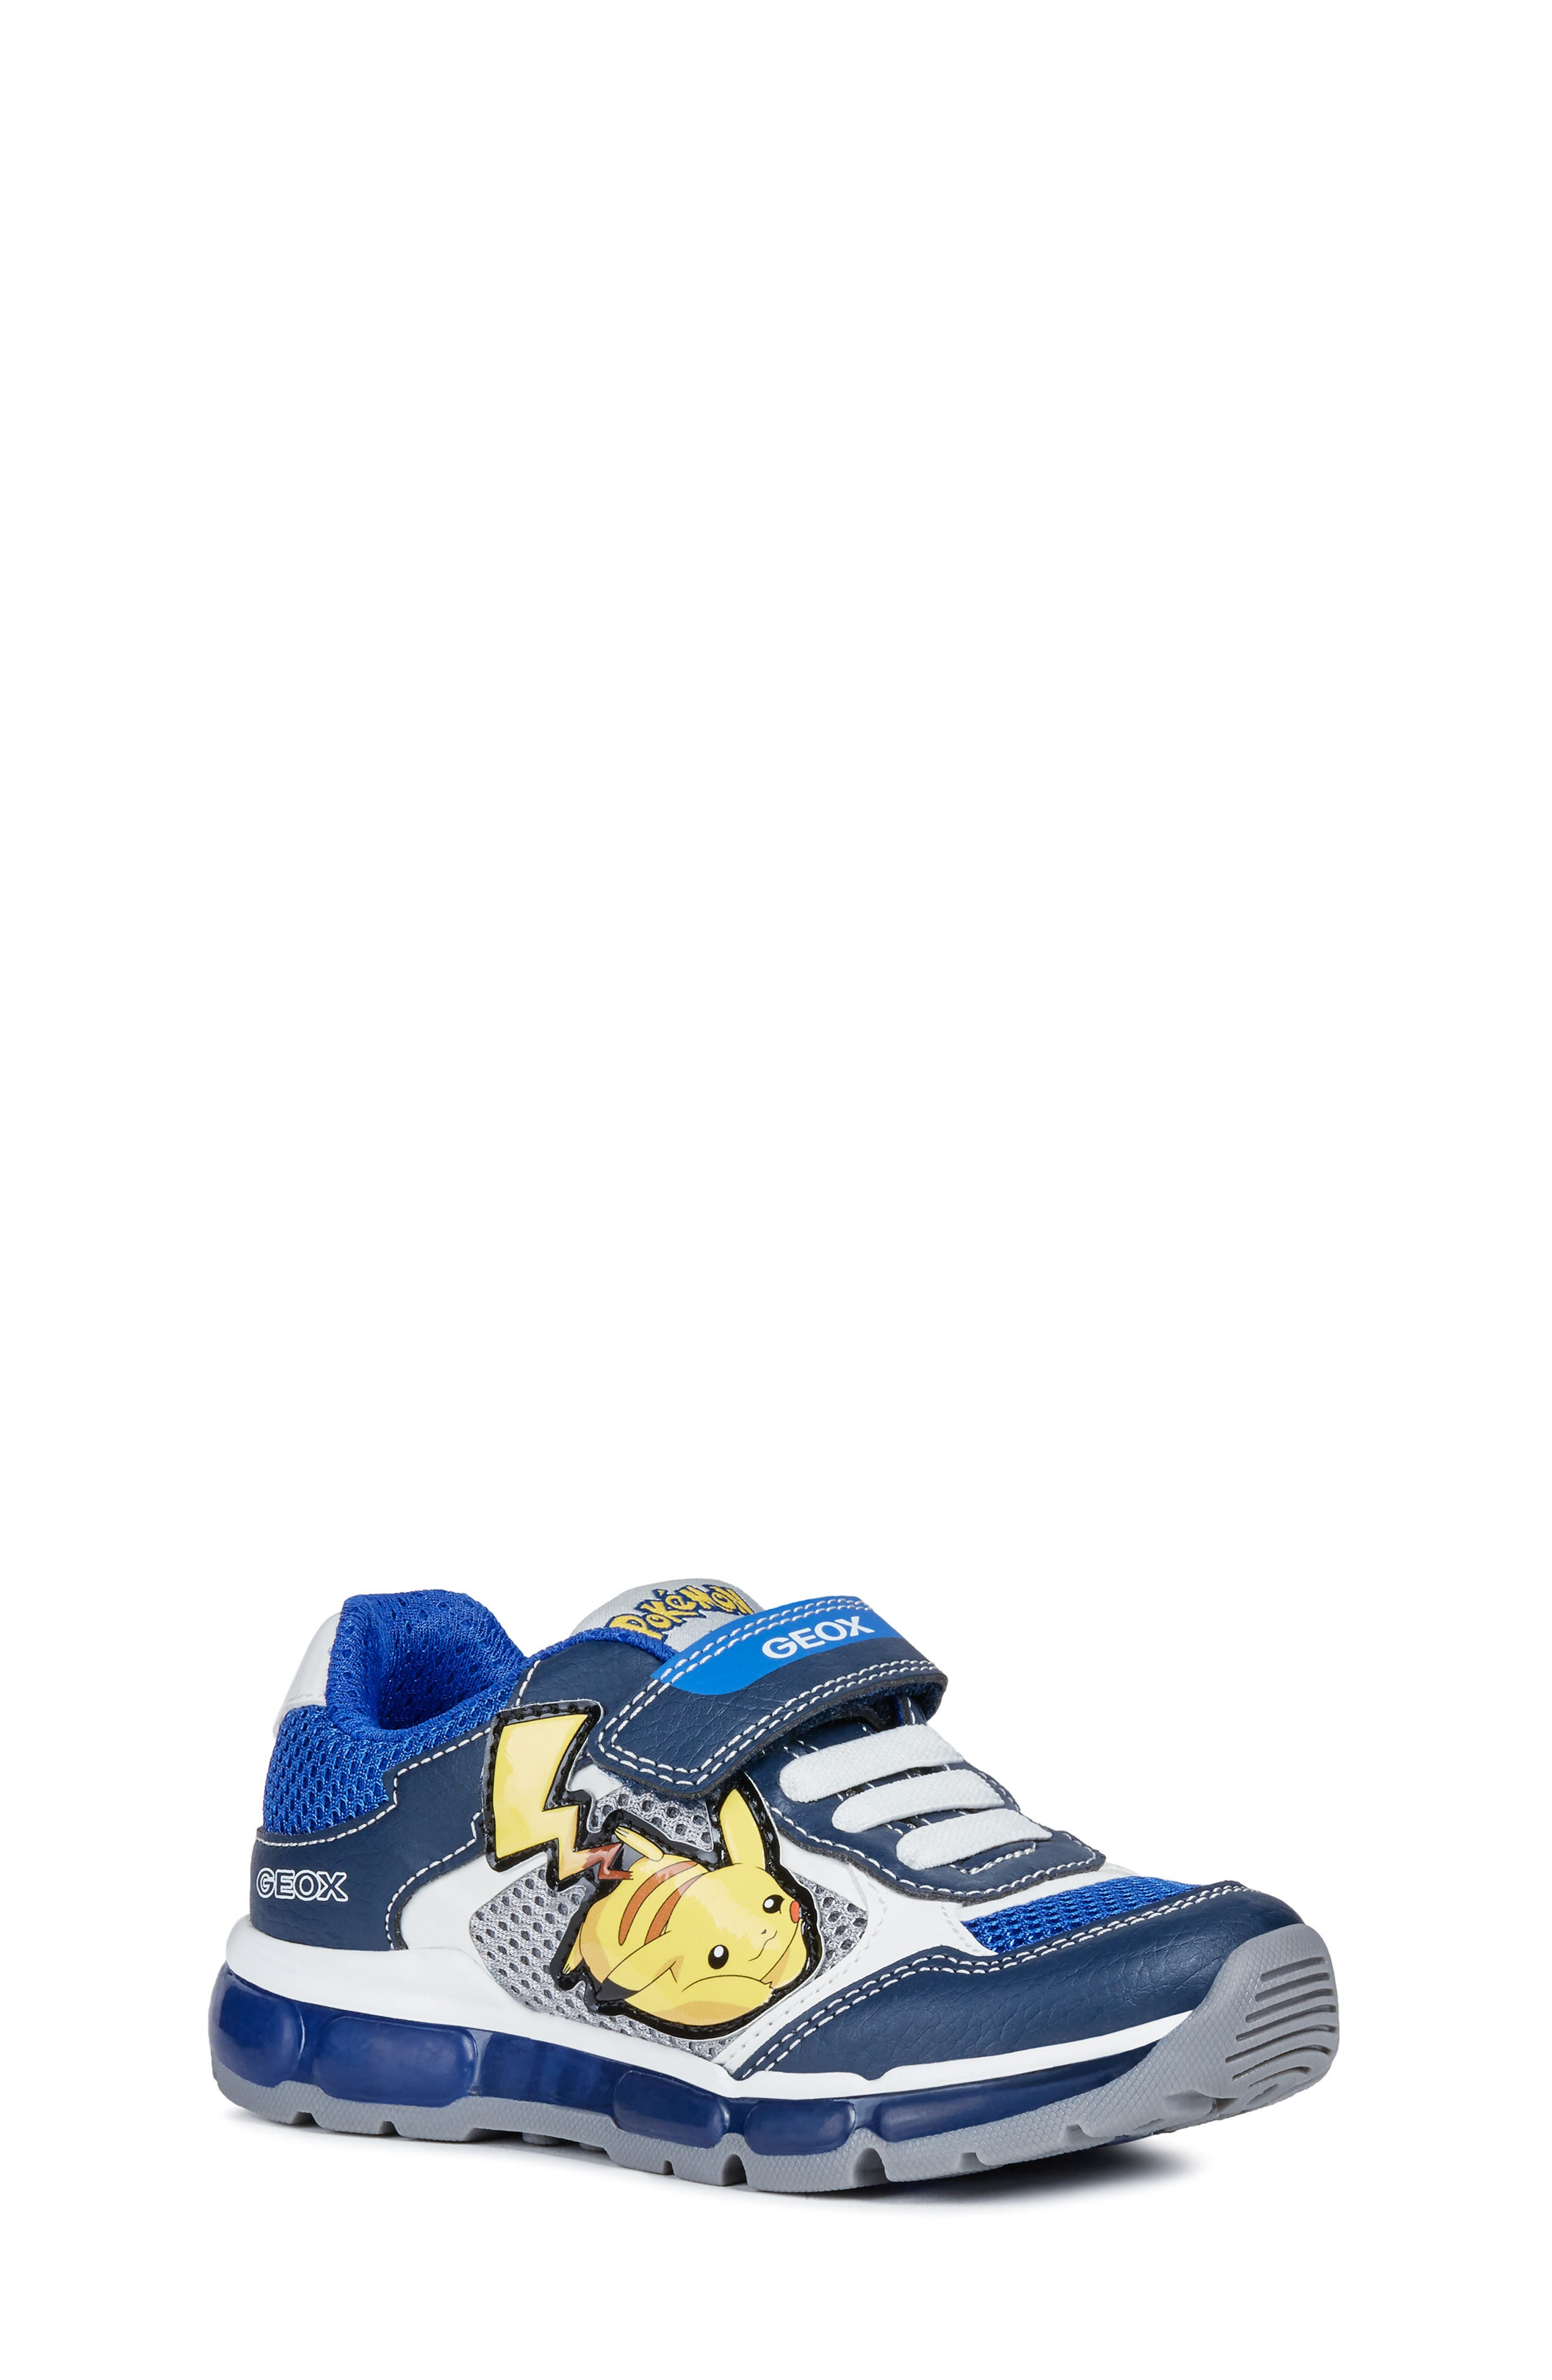 Boys Geox Jr Android LightUp Sneaker Size 4US  36EU  Blue